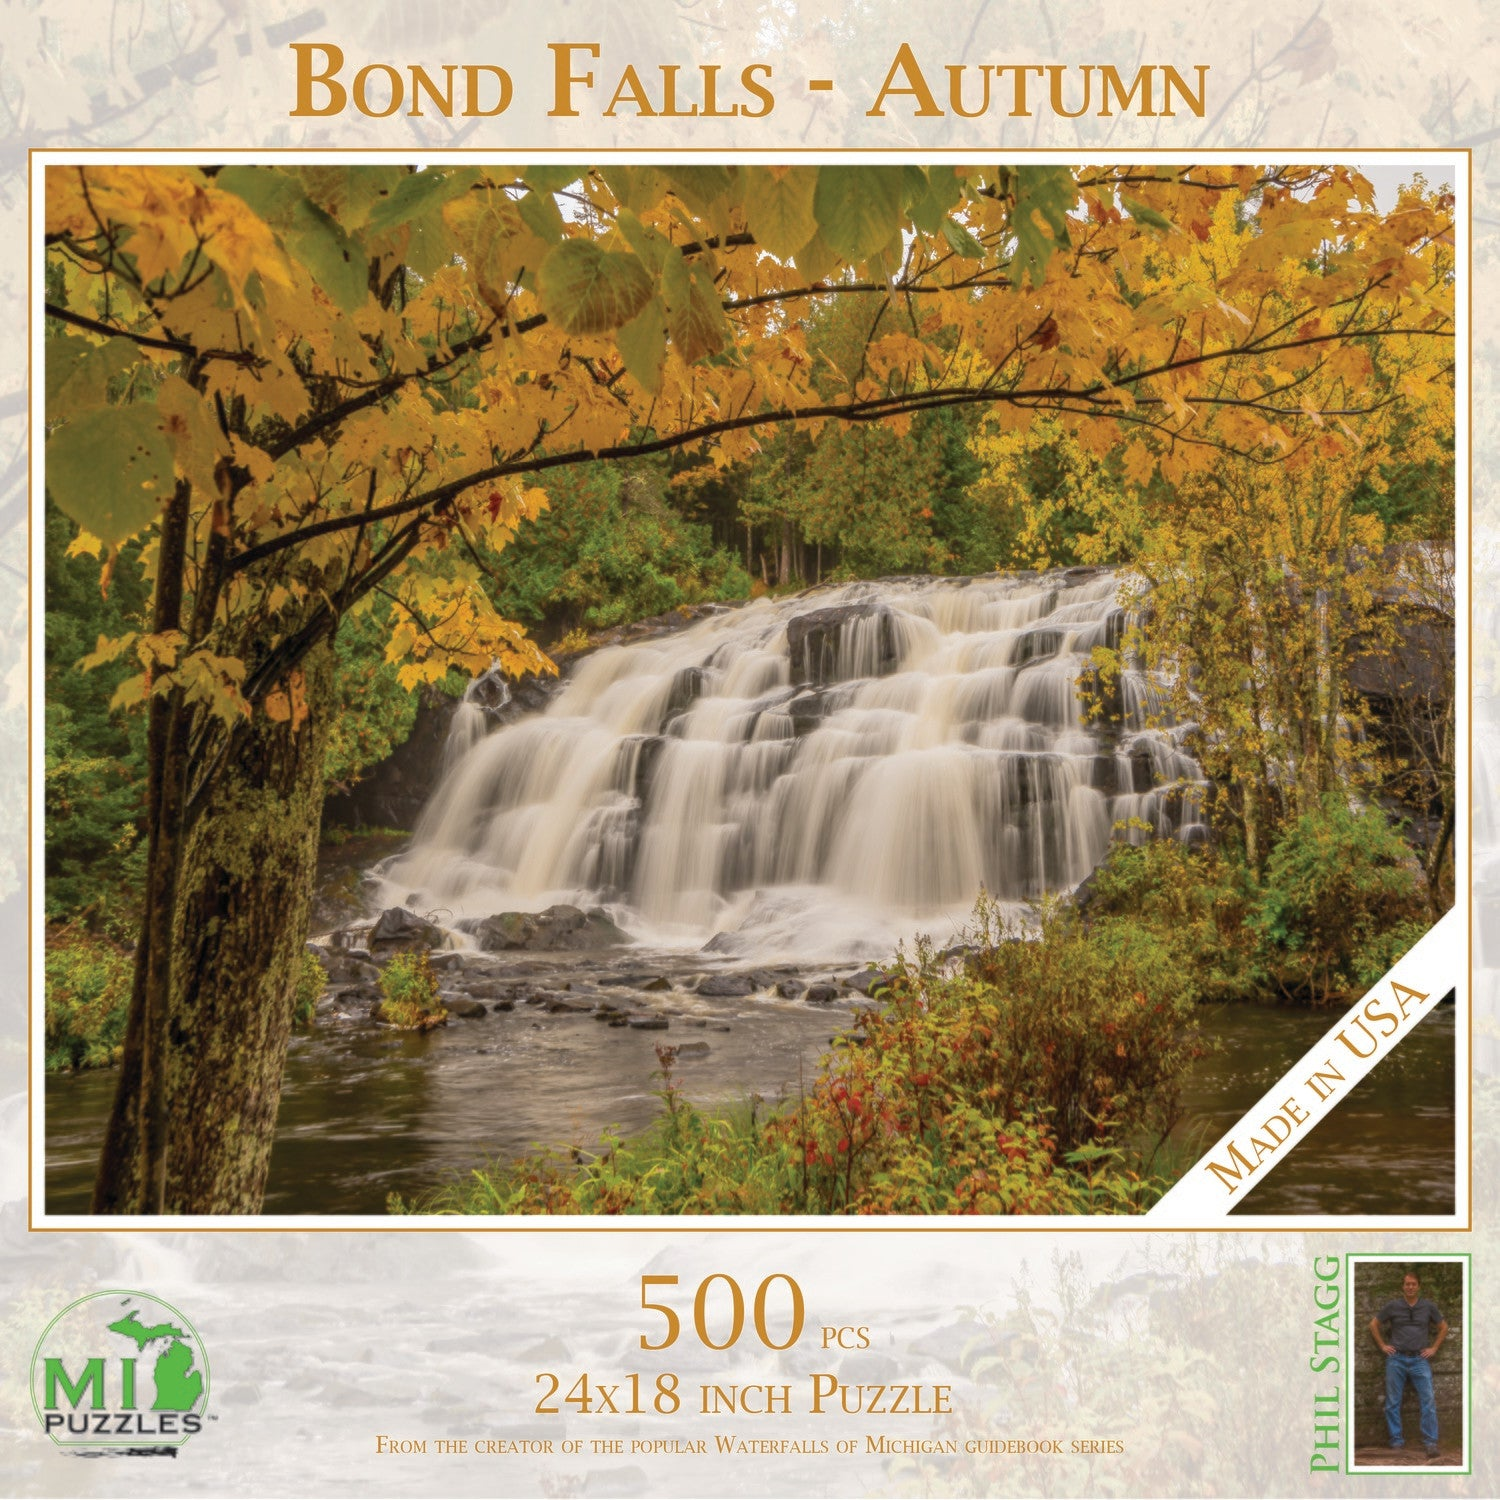 Bond Falls - Autumn Puzzle - 500 pcs